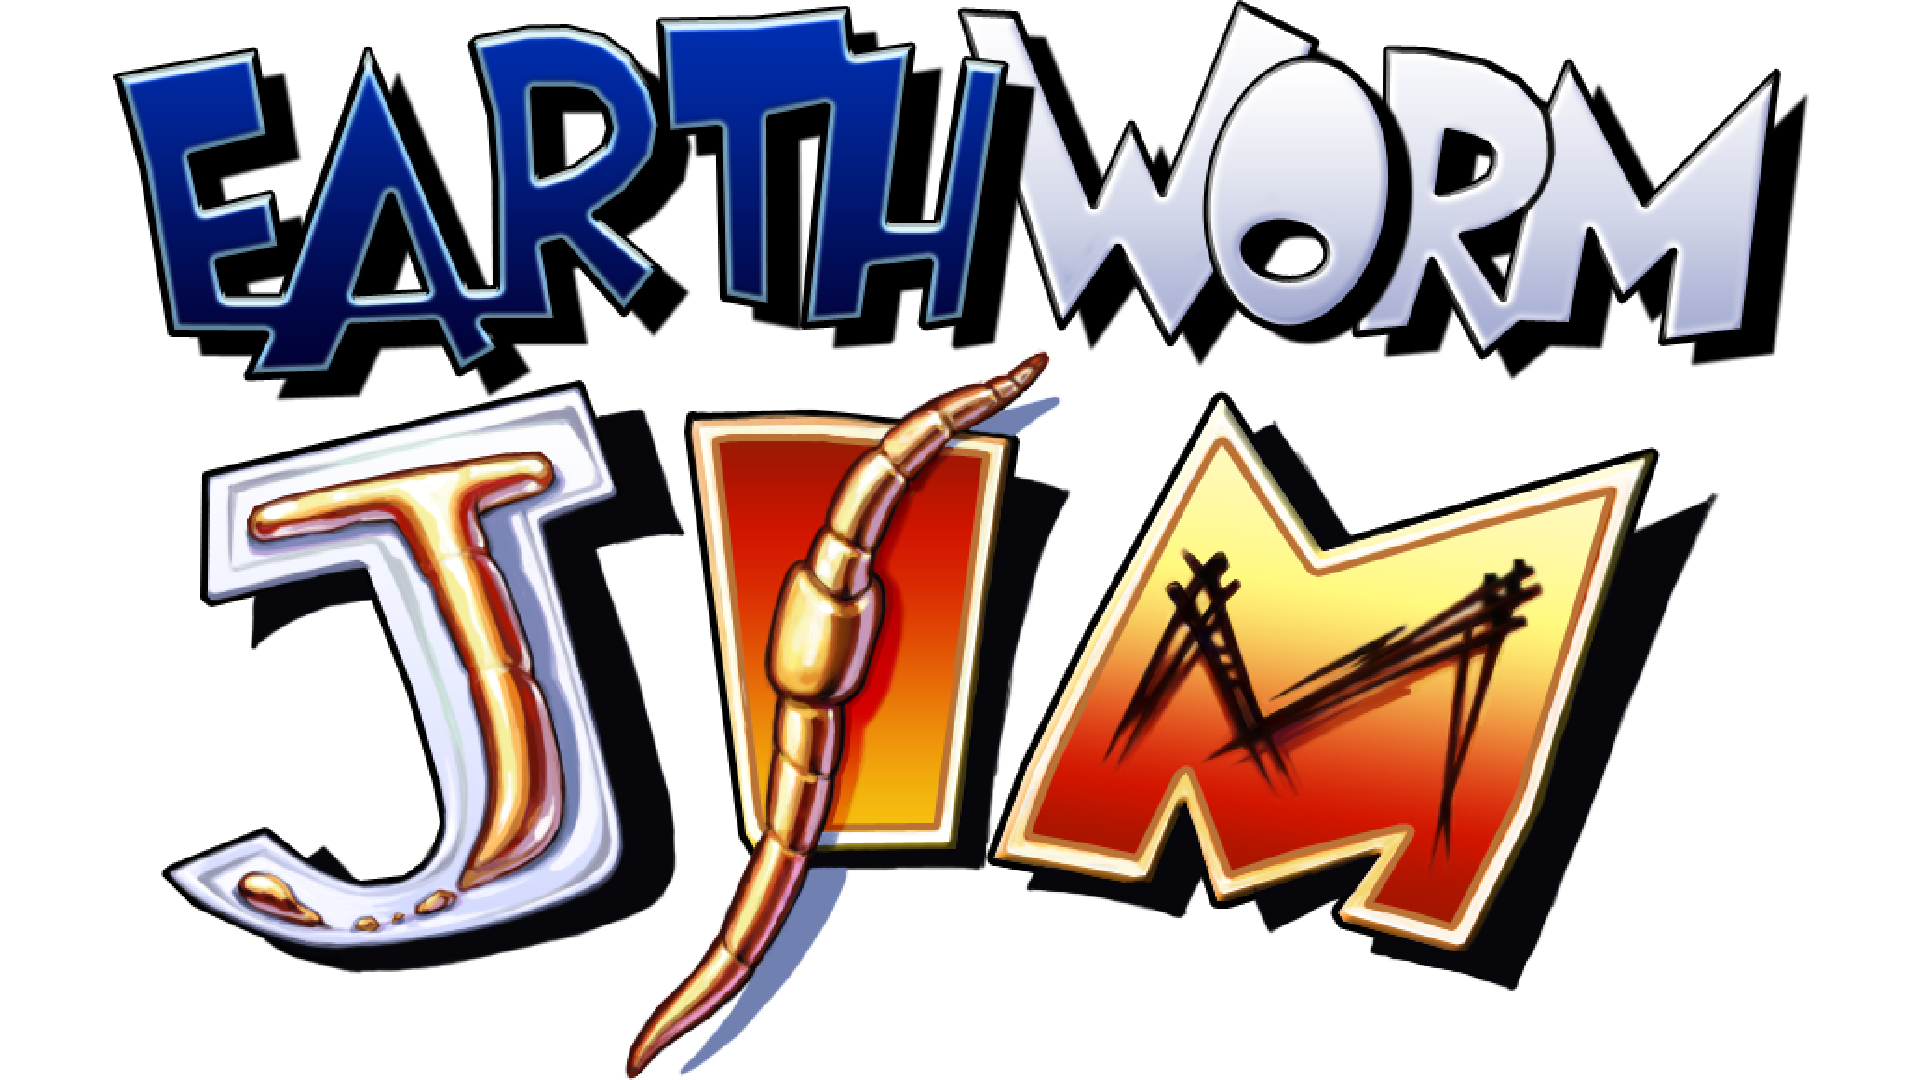 Earthworm Jim (Game Boy) Logo